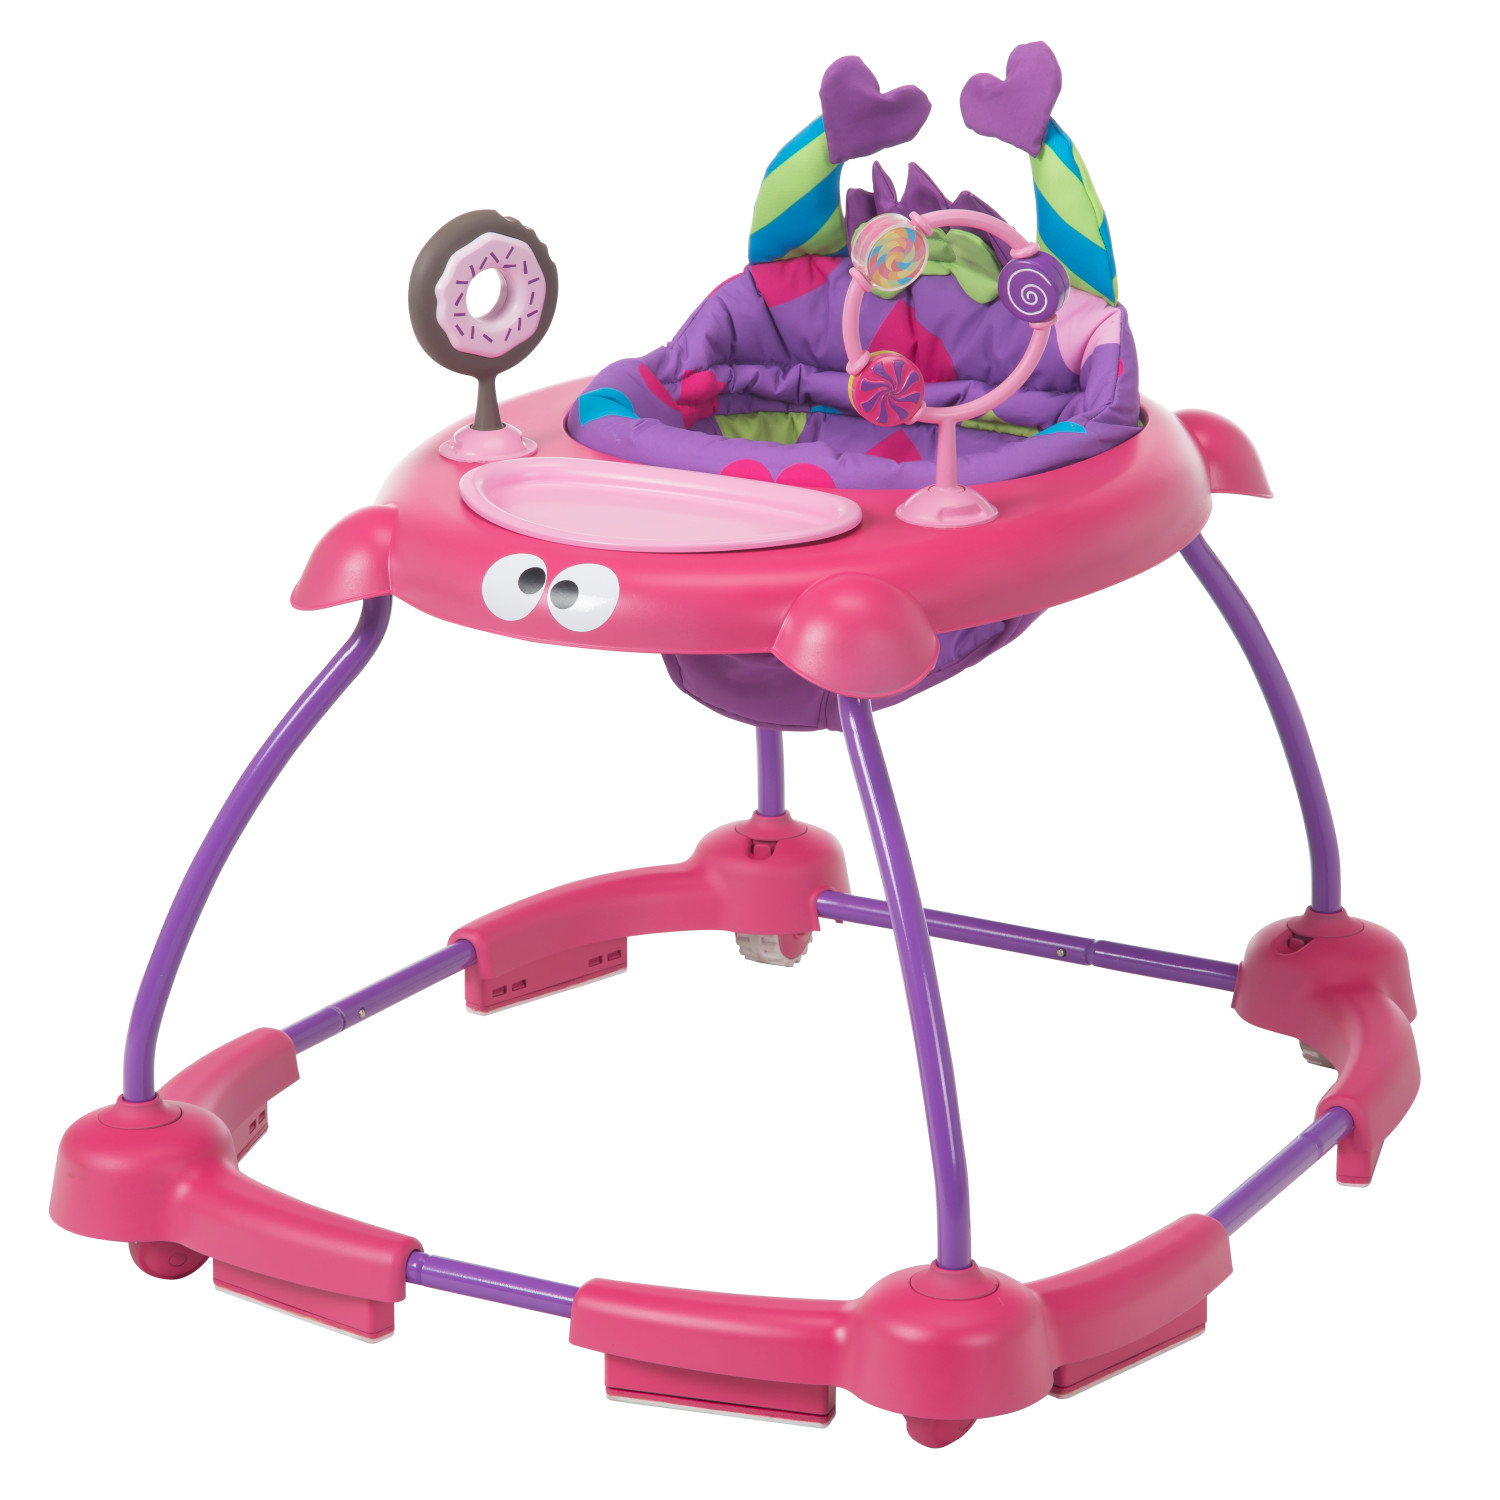 walker bouncing chair car back support cosco simple steps interactive baby silly sweet